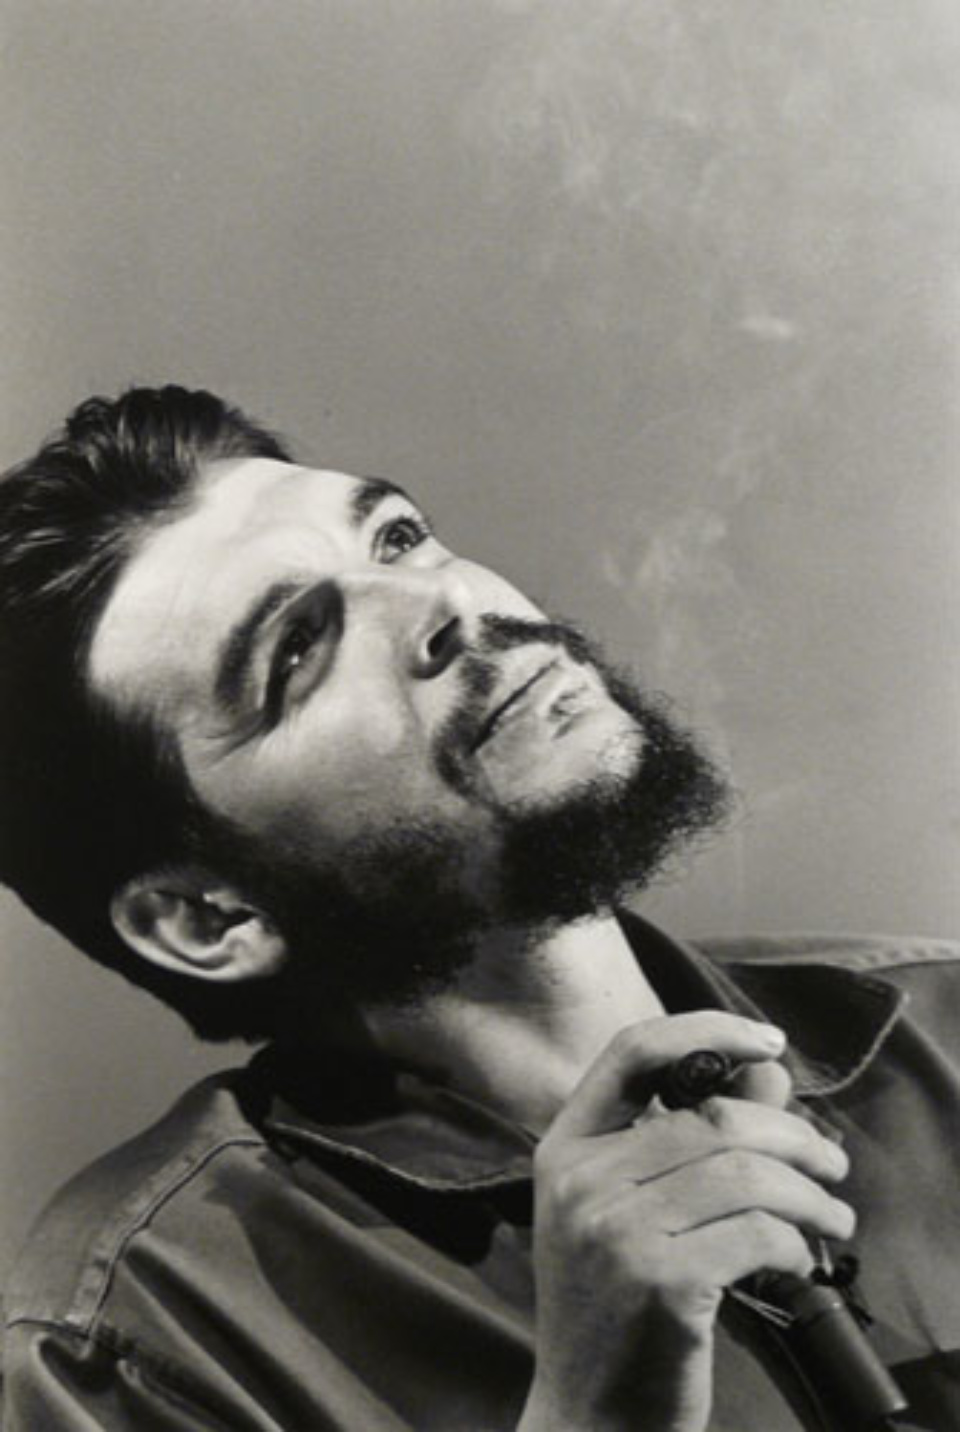 Elliott Erwitt Che Guevara Kuba, 1964 Gelatin Silver Print Signed, titled and dated Available in different formats